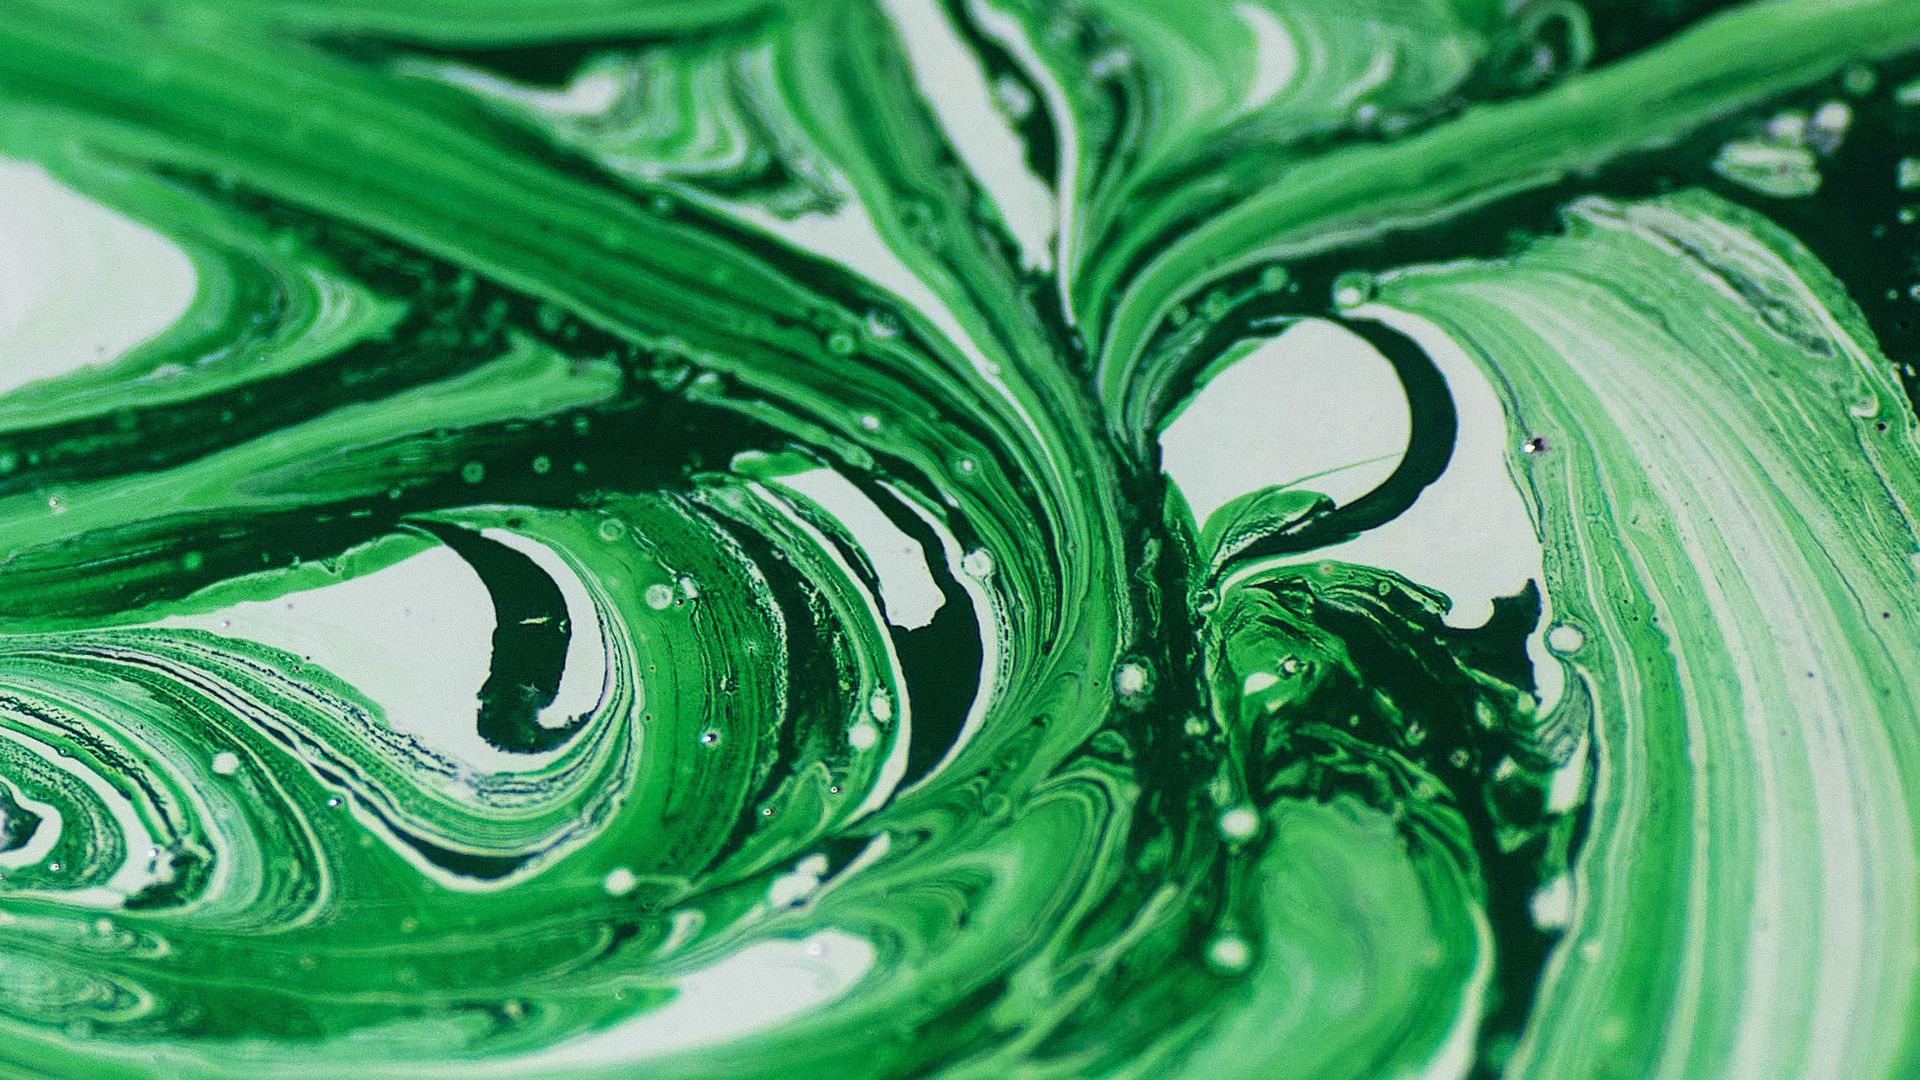 Abstract-02/Green Paint Stains Mixing HD.jpg Desktop